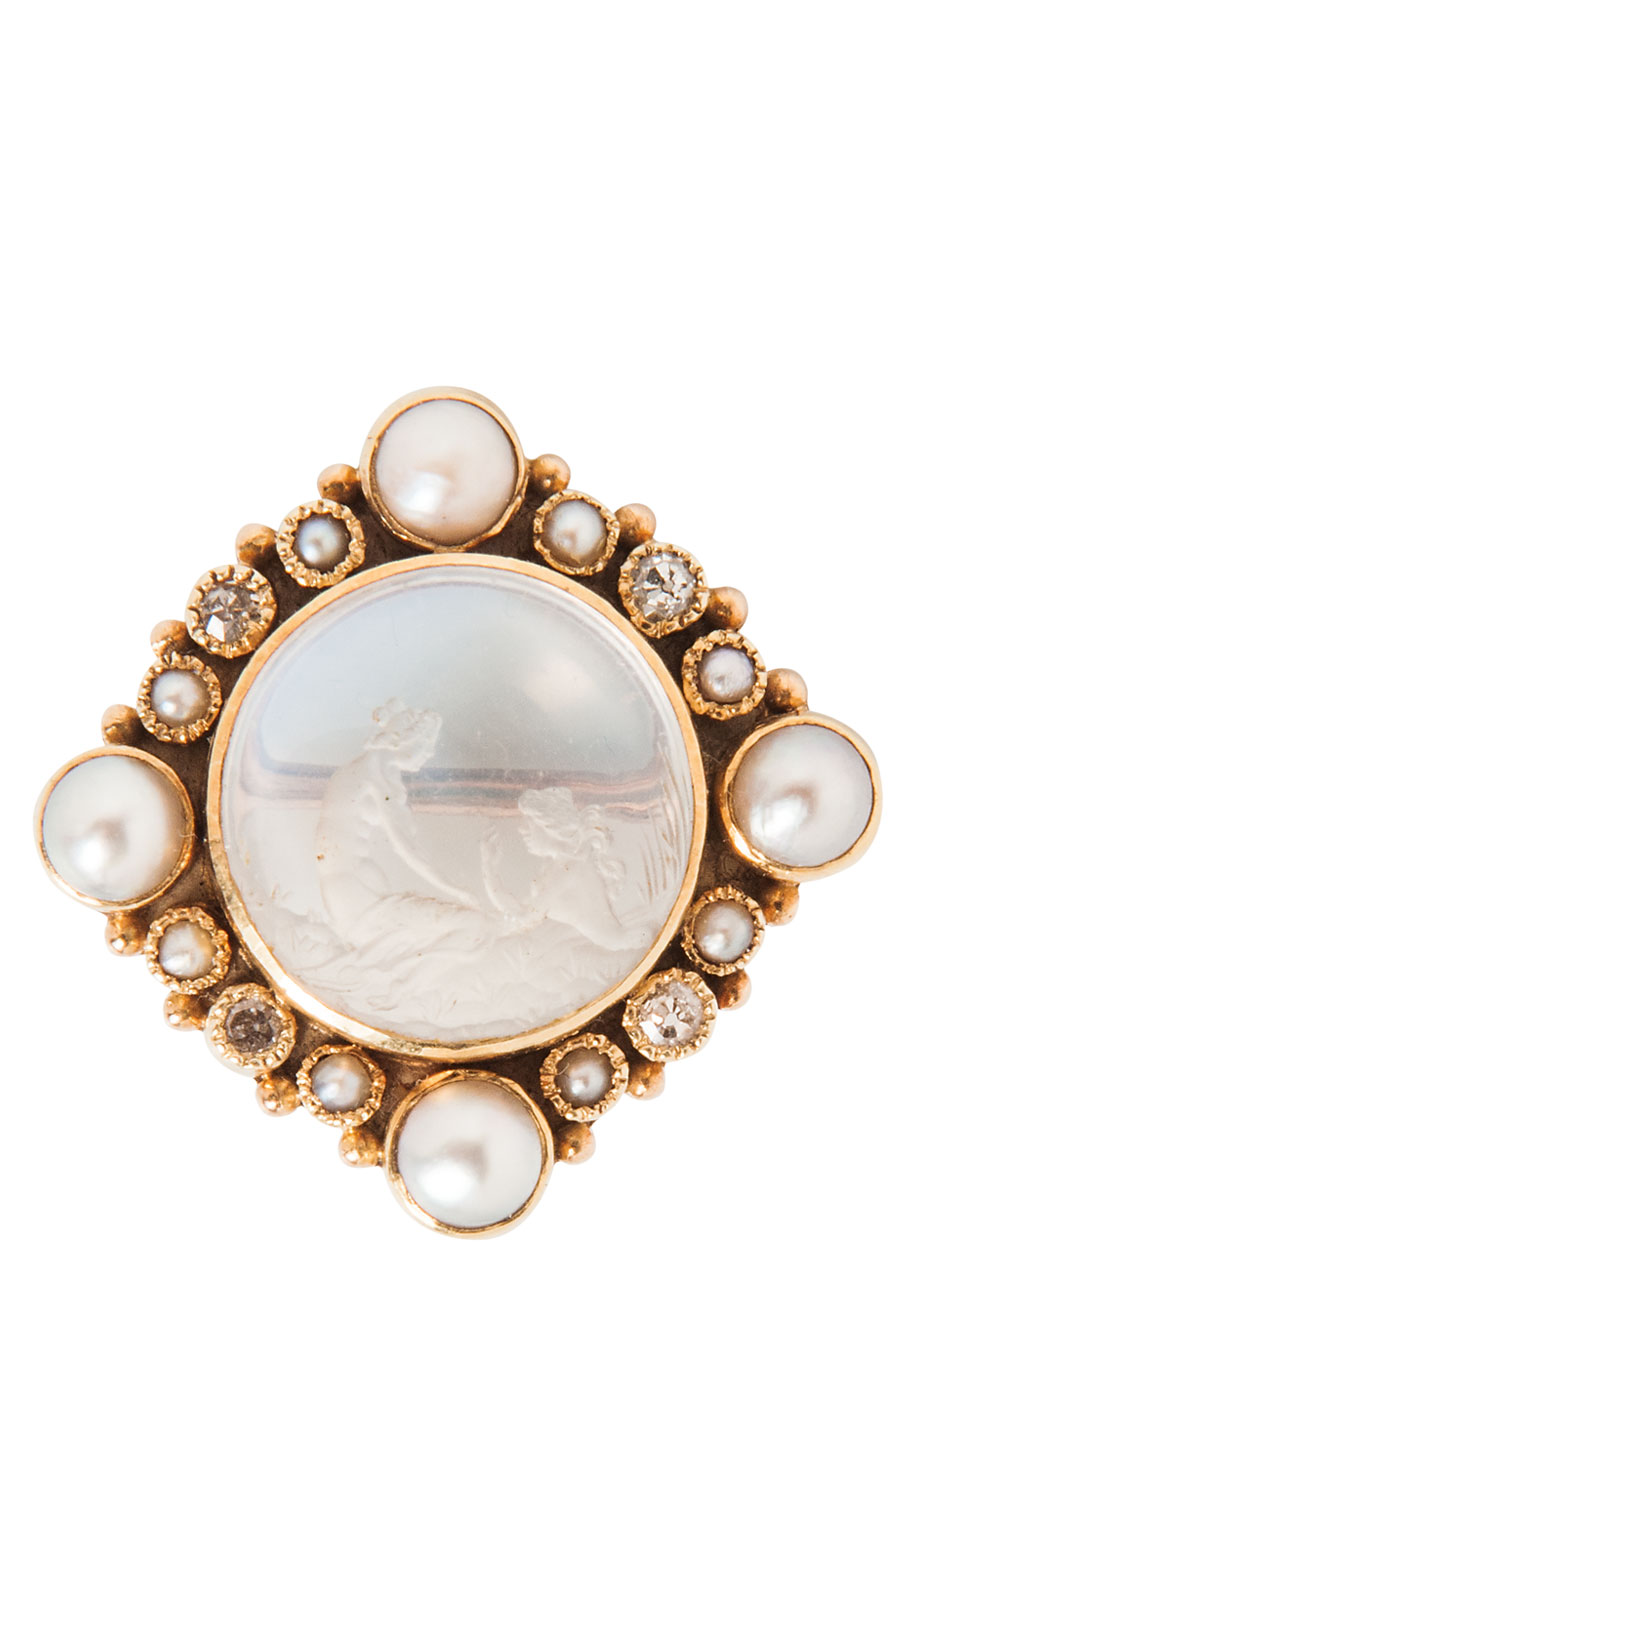 Arts and Crafts Gold and Moonstone Intaglio Brooch